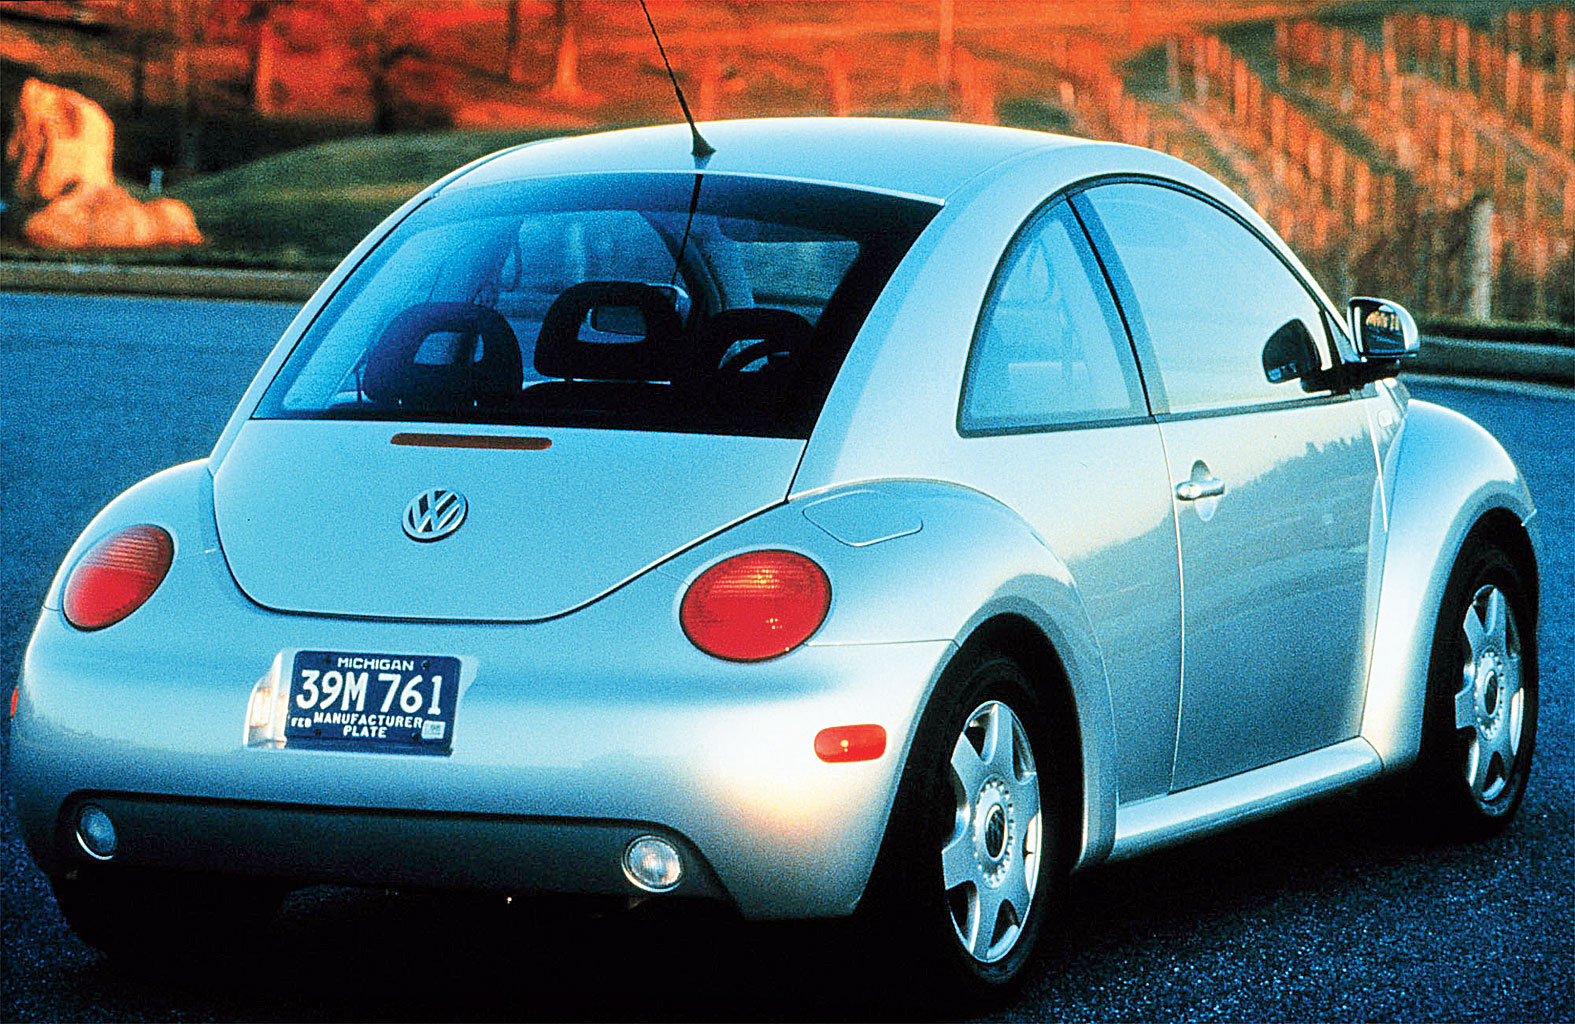 The 1999 iteration of the Beetle harked back to the original shape, and had a little vase on the dashboard for a flower as a throwback to its glory days as a flower power vehicle with psychedelic blooms painted on it. But purists have never accepted it as a real successor to the original for a variety of reasons, not least of which was the water-cooled front engine and the car's VW Golf underpinnings.